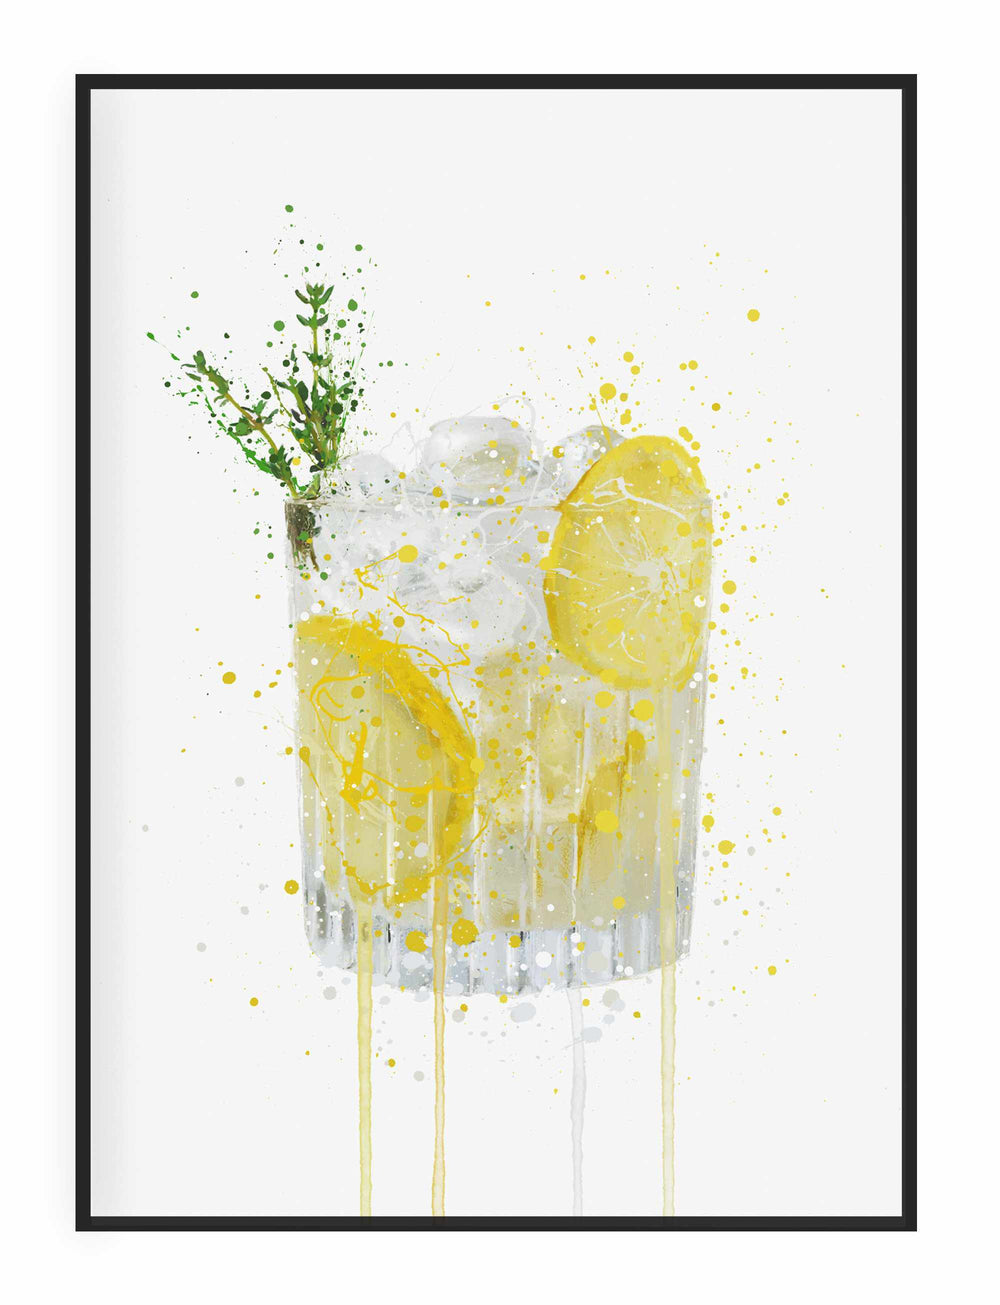 Gin and Tonic 'Lemon & Thyme' Wall Art Print